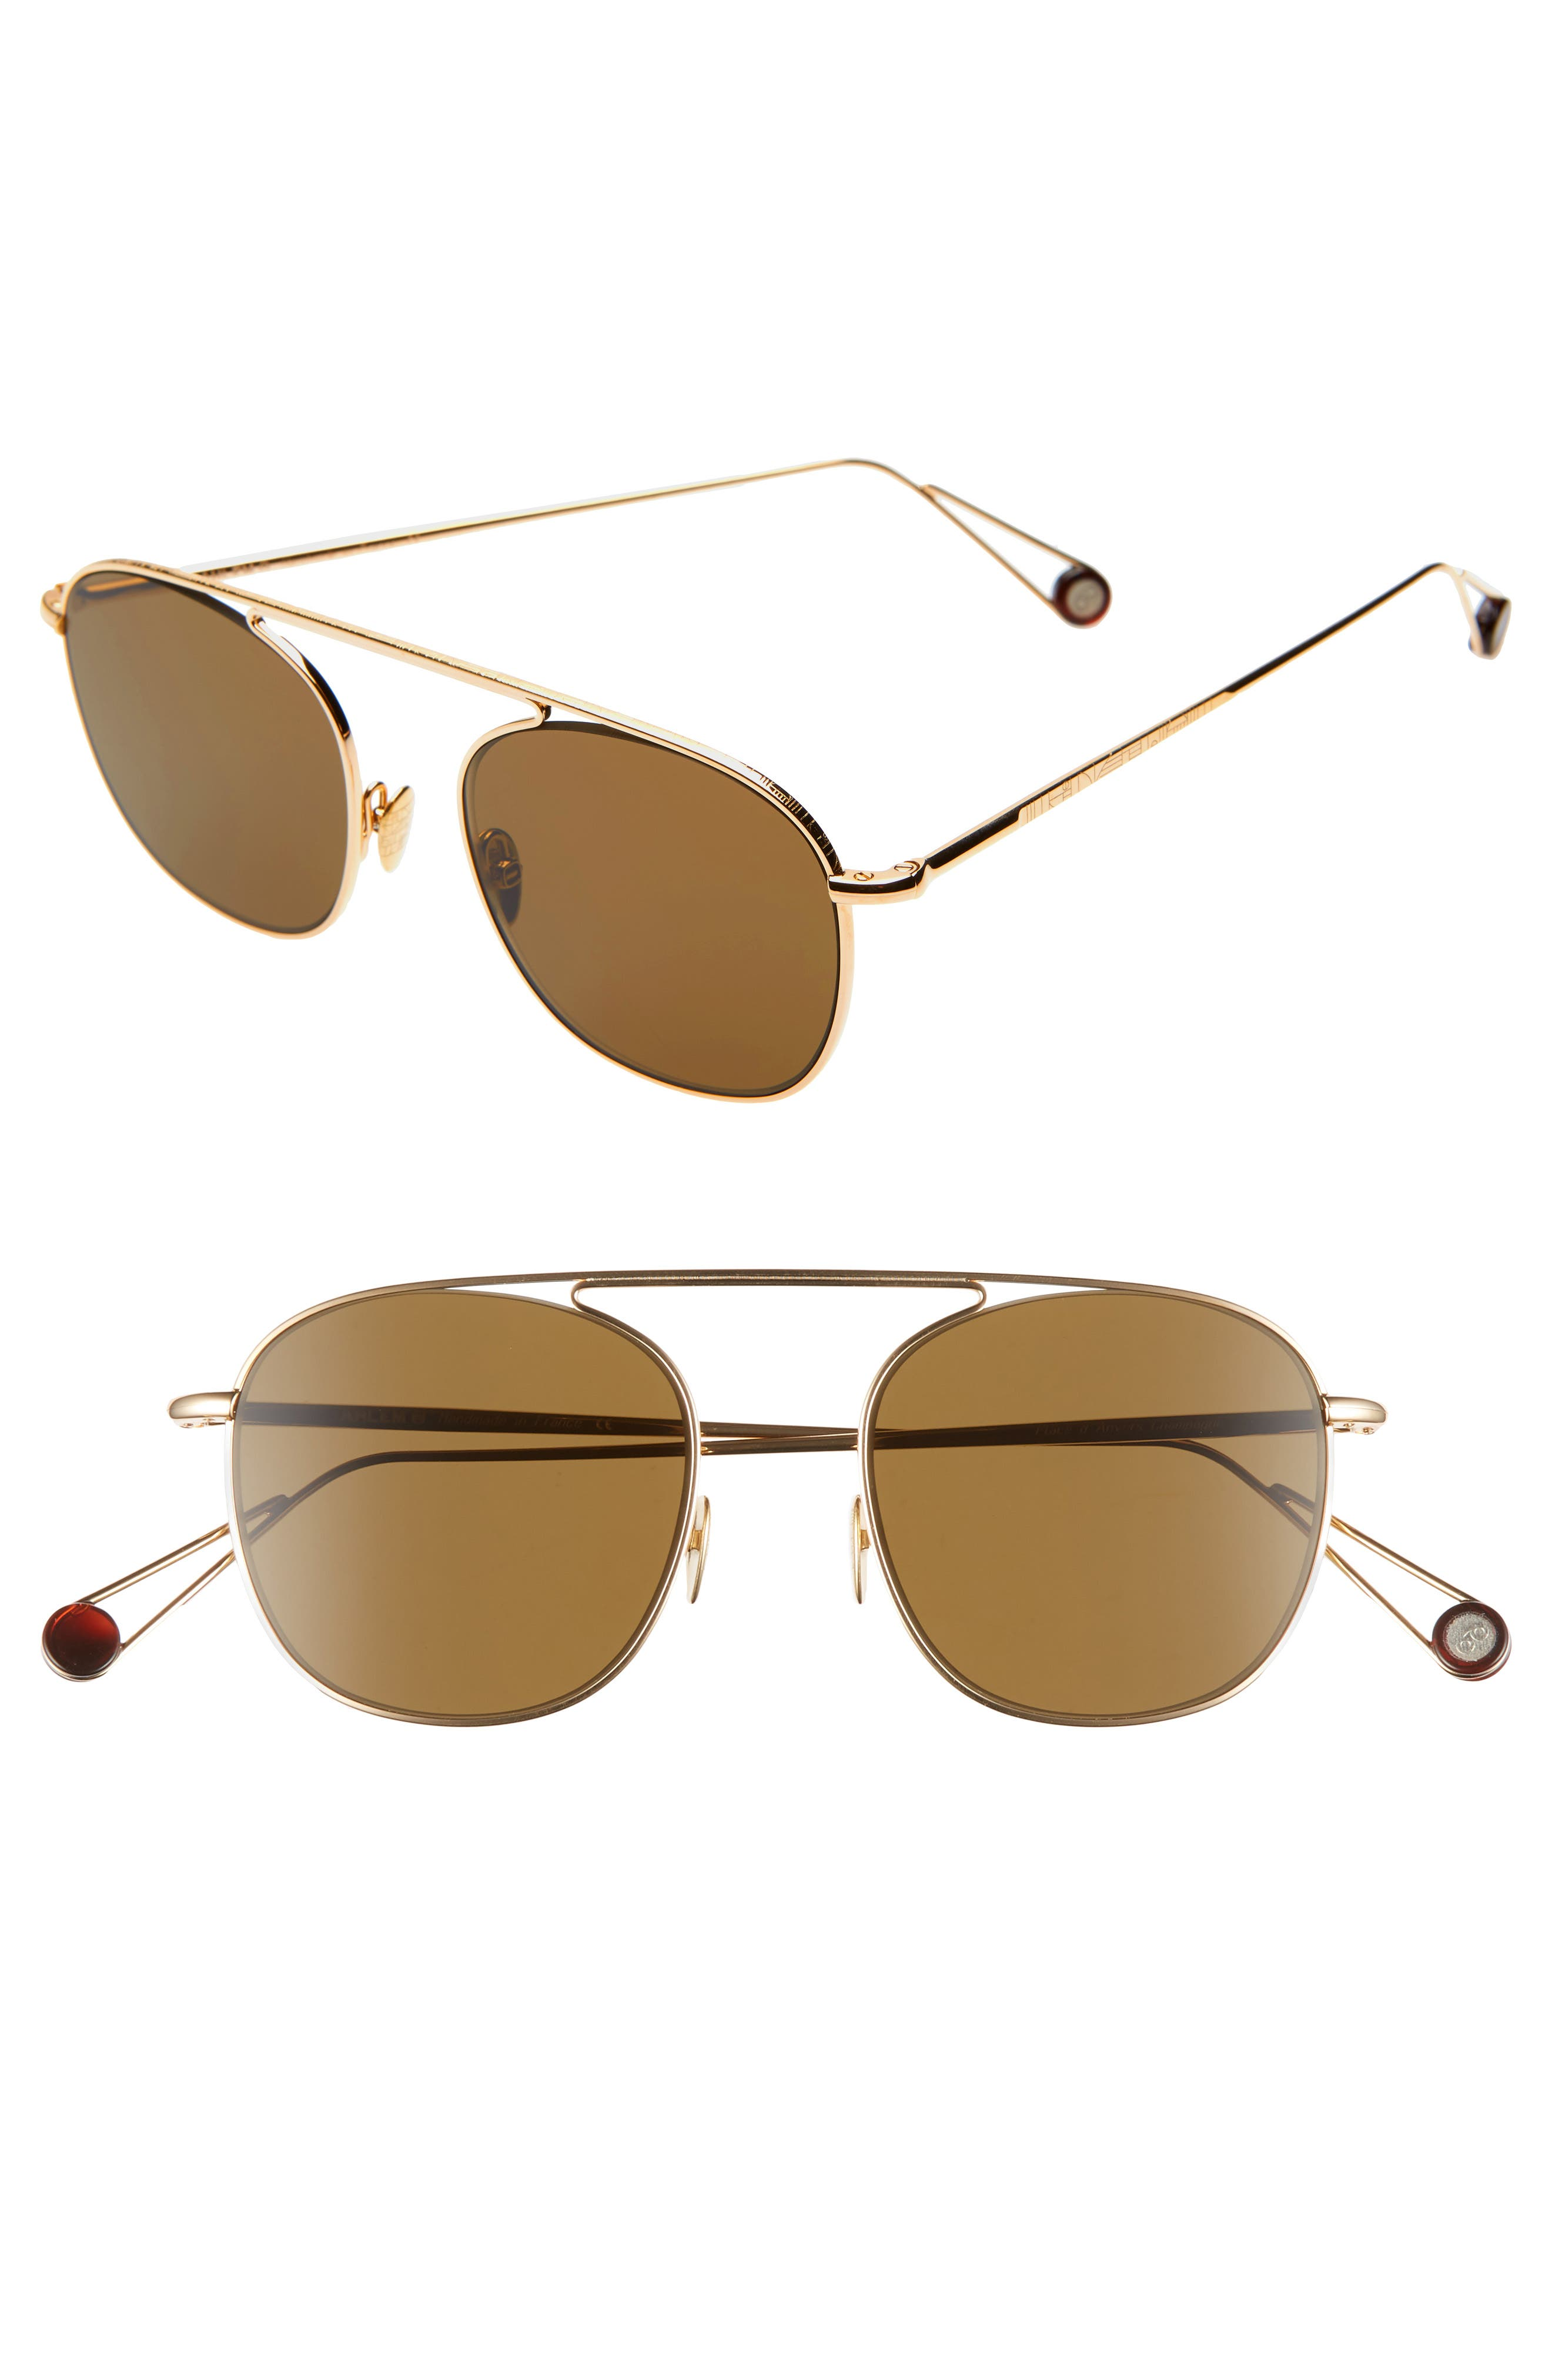 AHLEM D'Anvers 49Mm Aviator Sunglasses in Yellow Gold